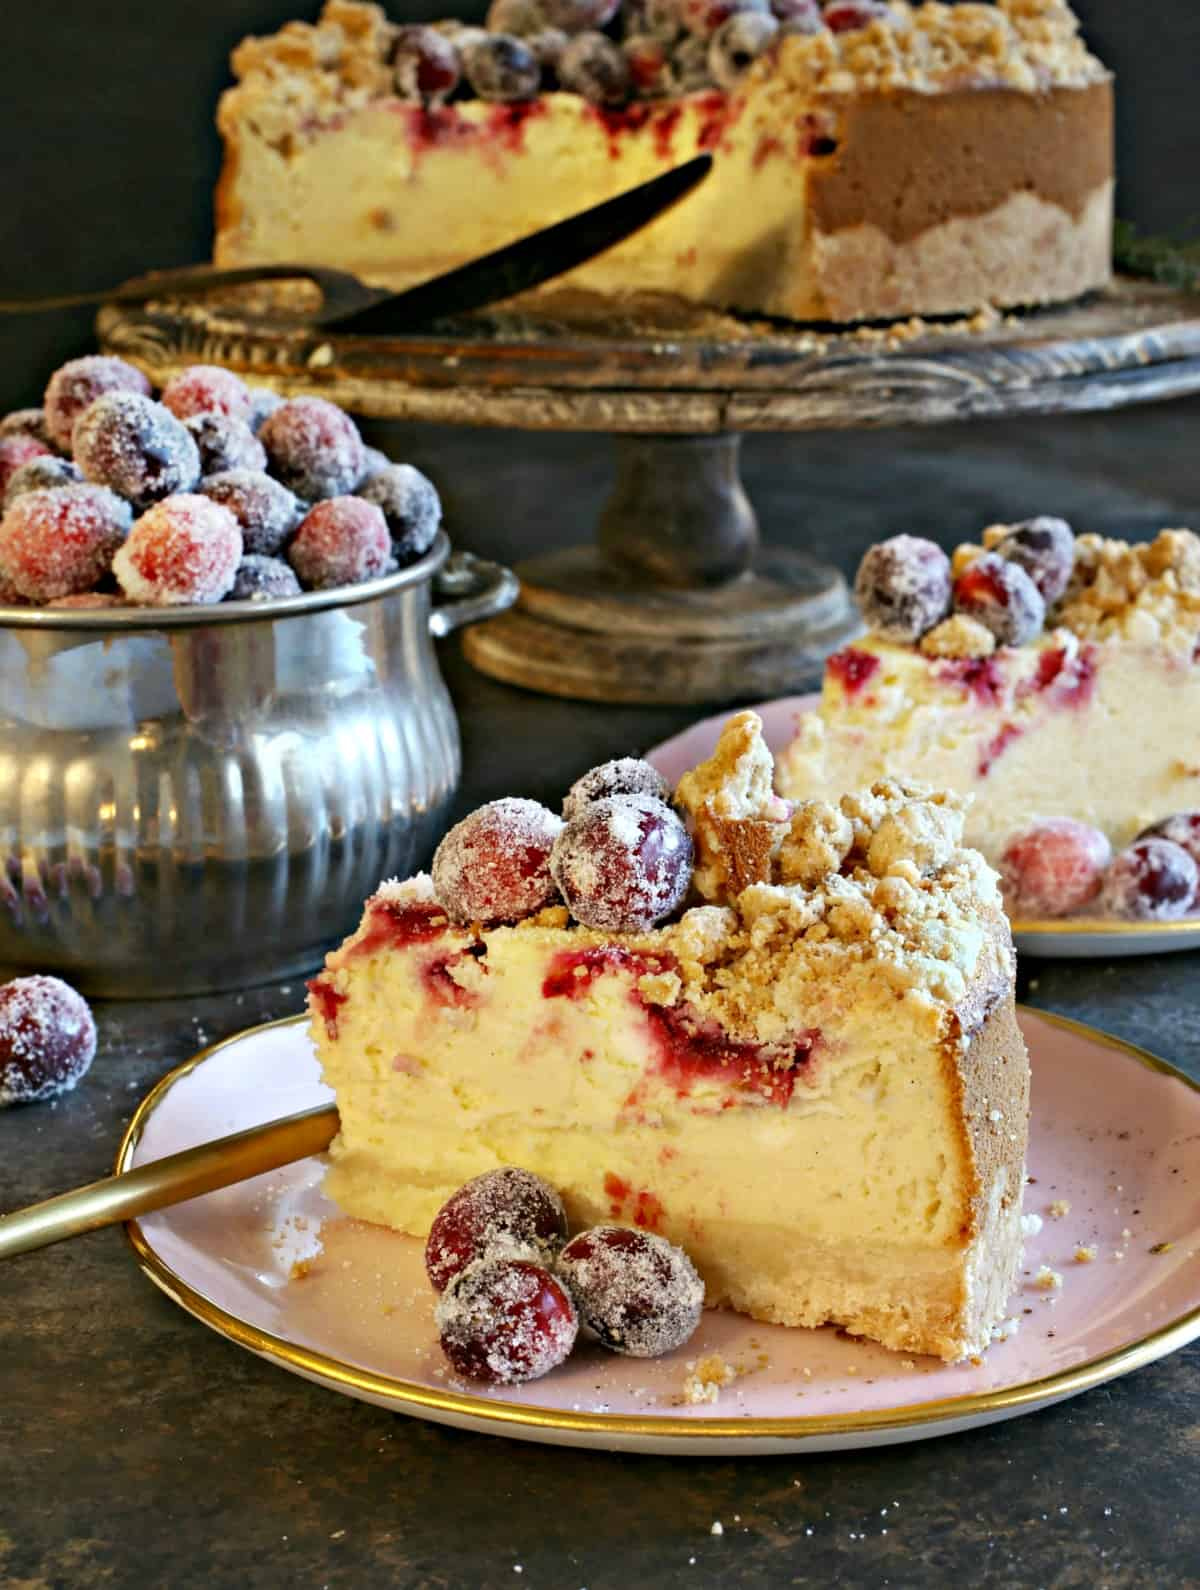 Slice of cranberry cheesecake with sugared cranberries.